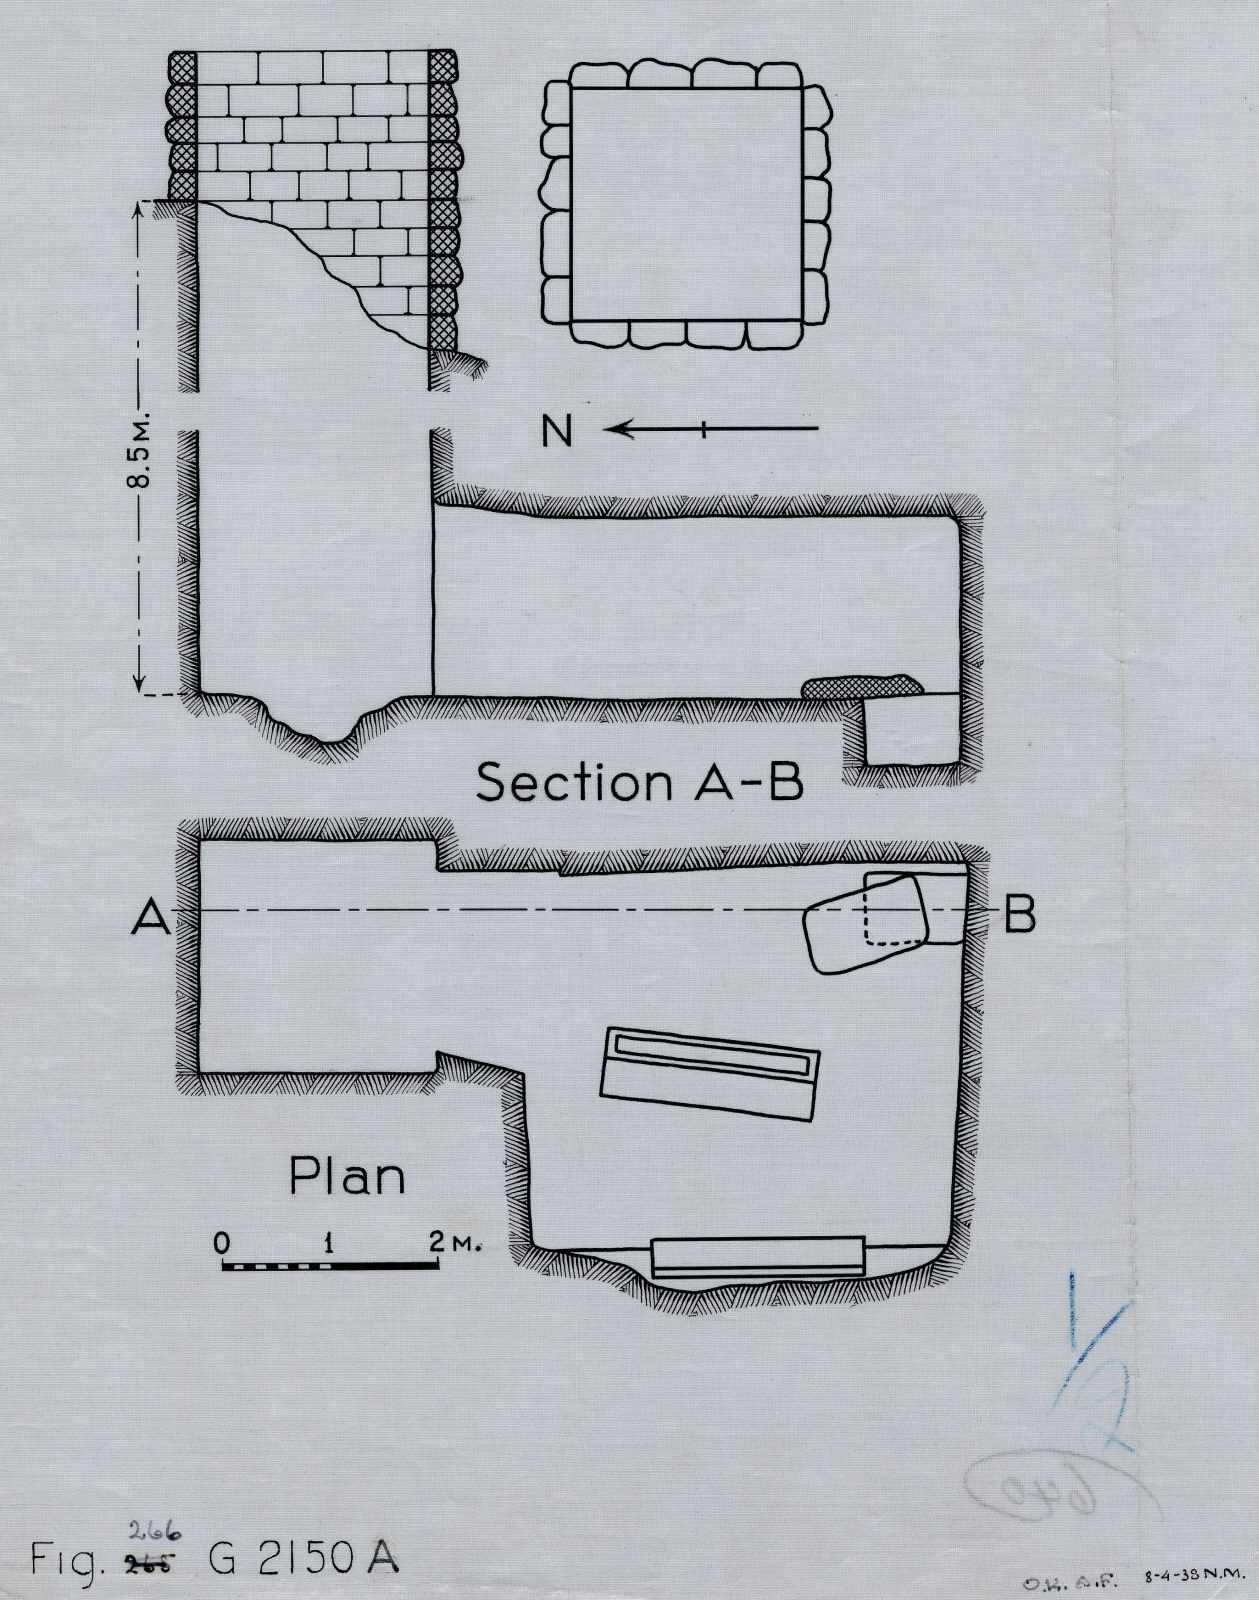 Maps and plans: G 2150, Shaft A